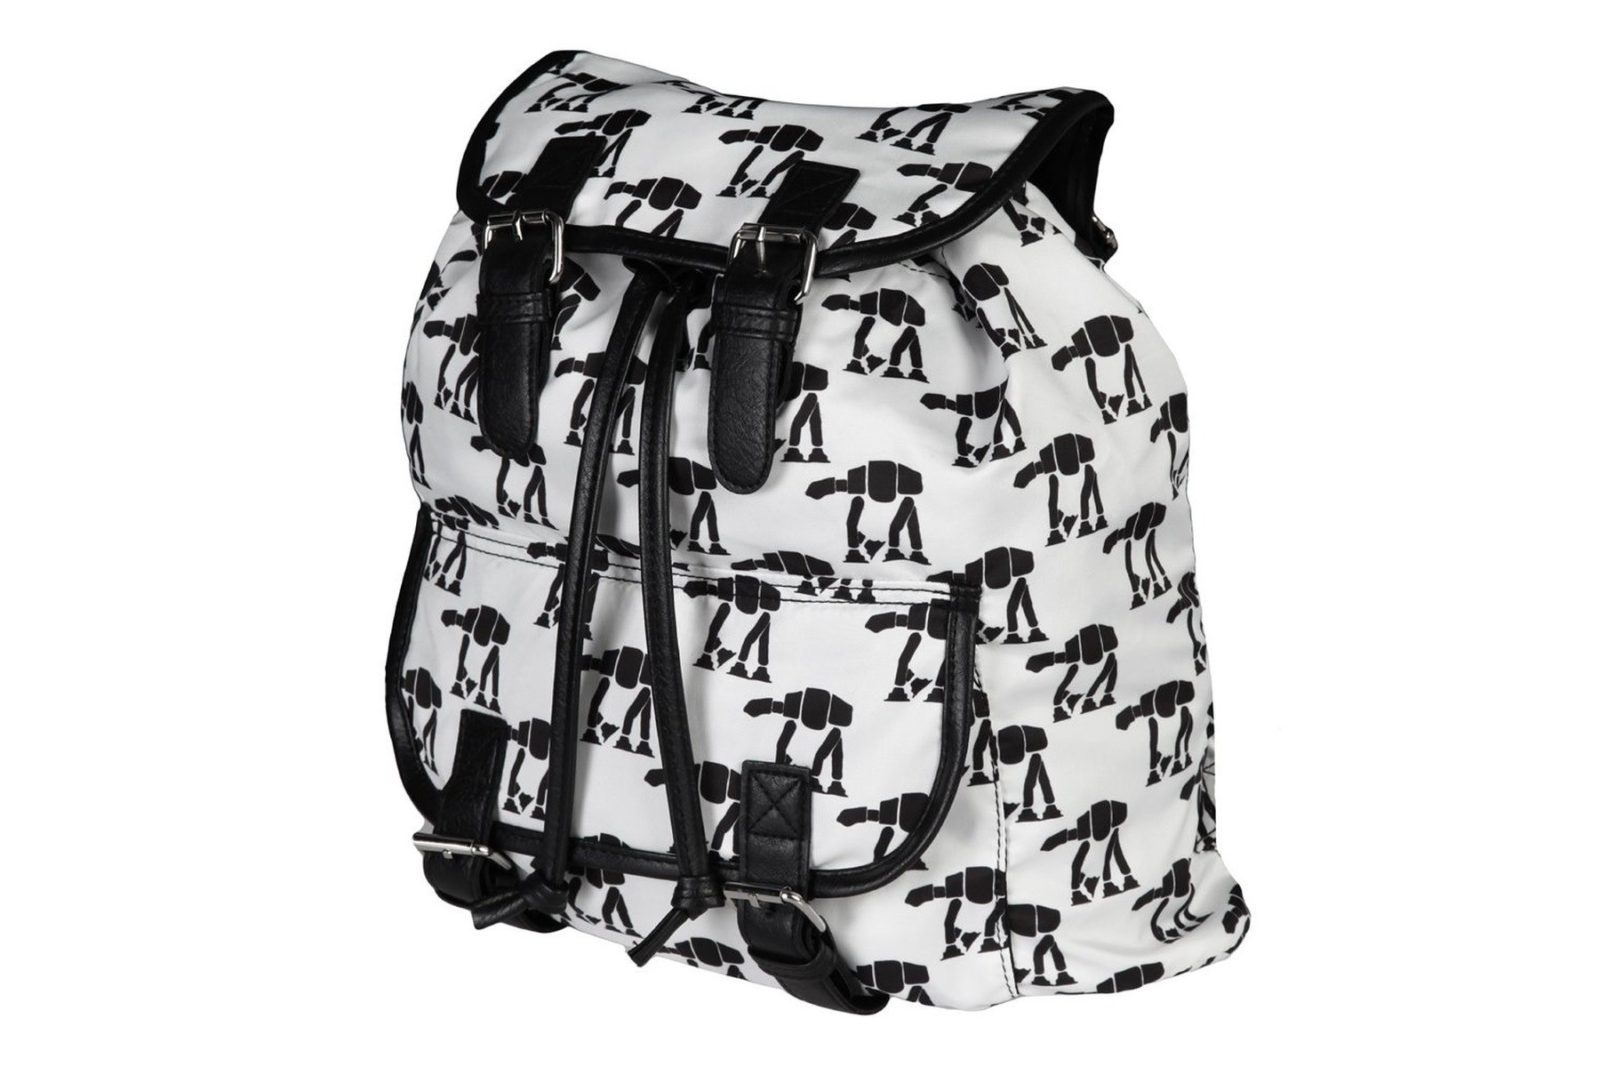 AT-AT all-over print satchel backpack